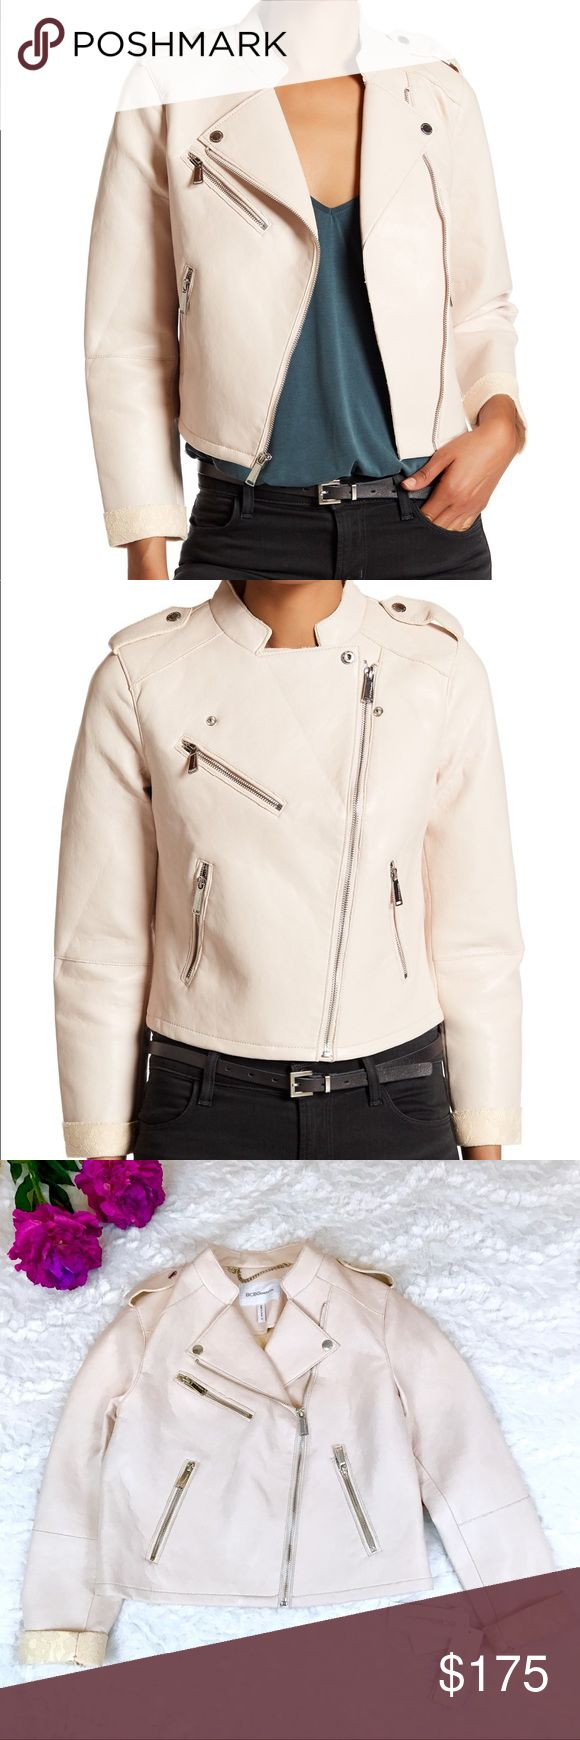 """BCBGeneration Blush Asymmetrical Zip Moto Jacket BCBGeneration Blush Asymmetrical Zip Moto Jacket. New with tags! Faux Leather with Silver Zipper and Button Detailing and Lace Detailing on the cuffs. Rugged distressed Seams for an effortlessly cool look.  Length: 21"""" Bust: 18"""" Flat Across Arm Length: 21"""" BCBGeneration Jackets & Coats"""